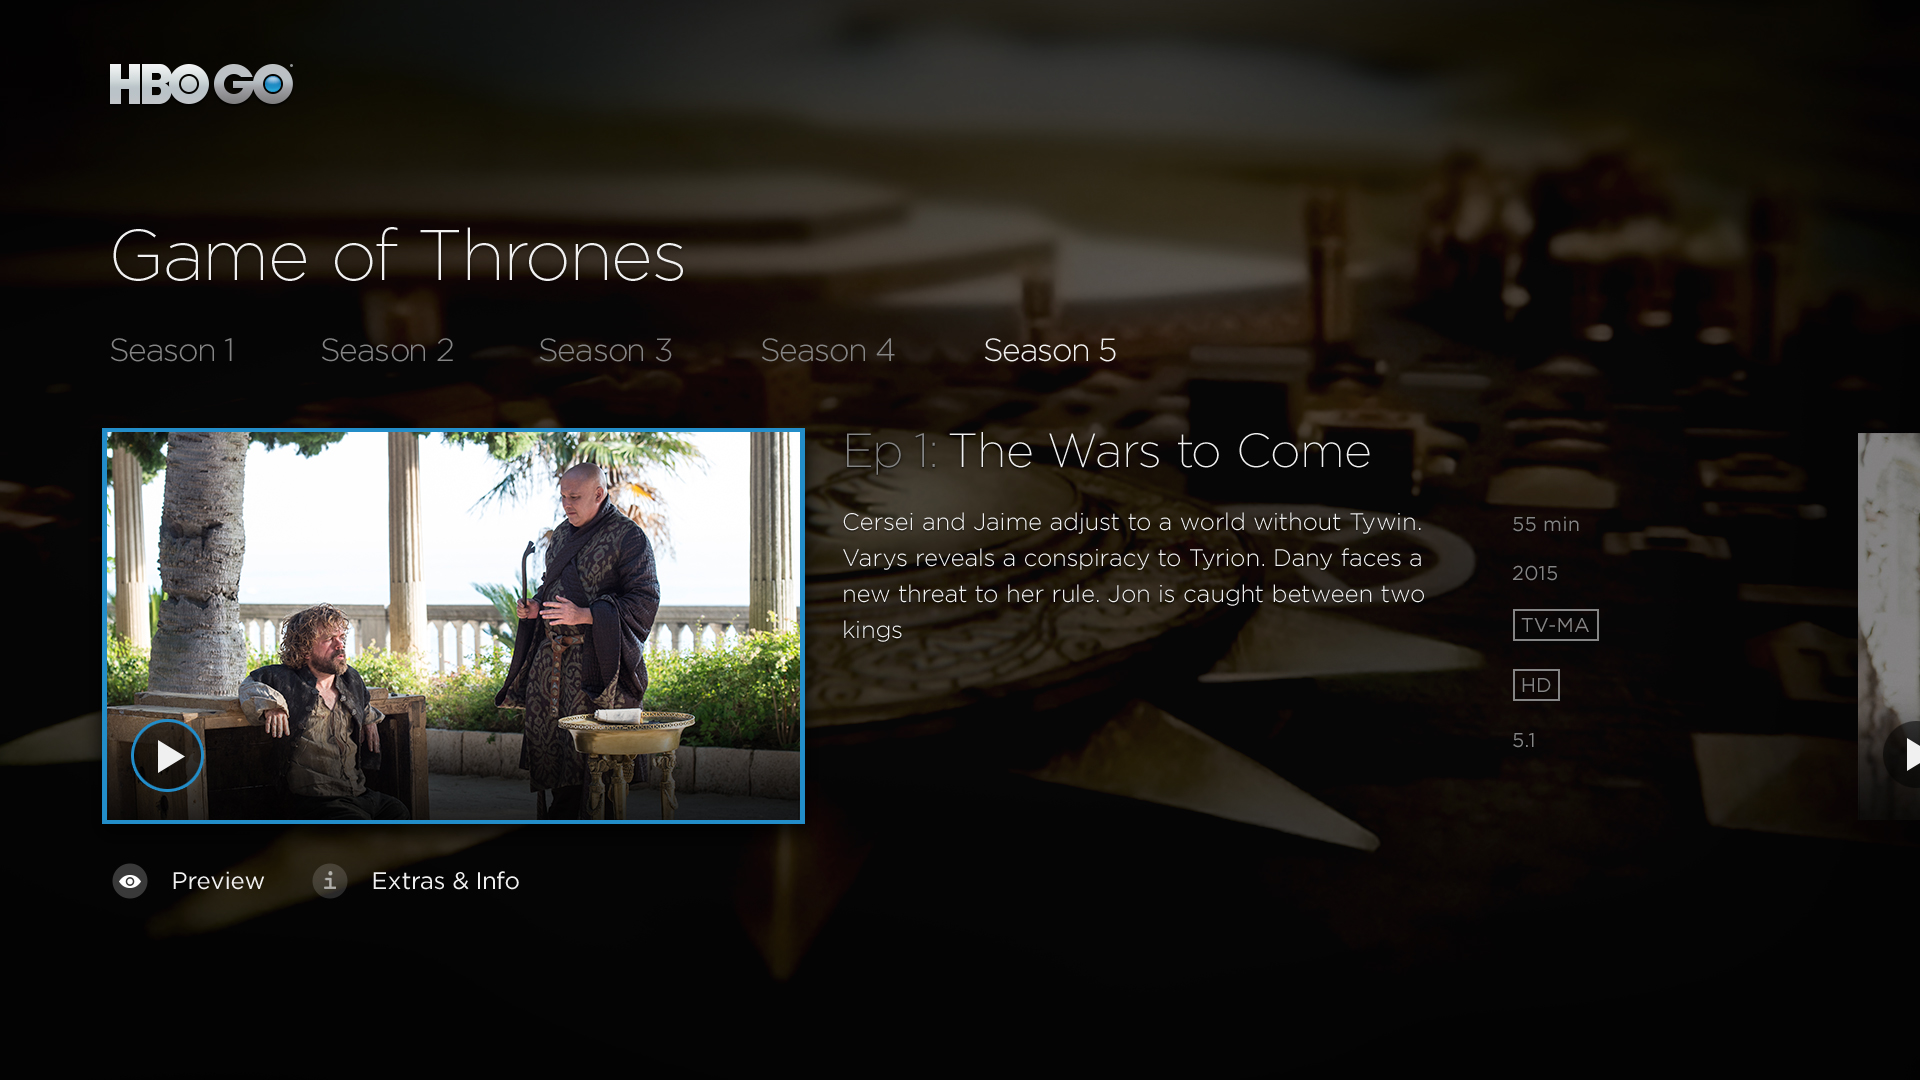 hbo go gift card photo - 1